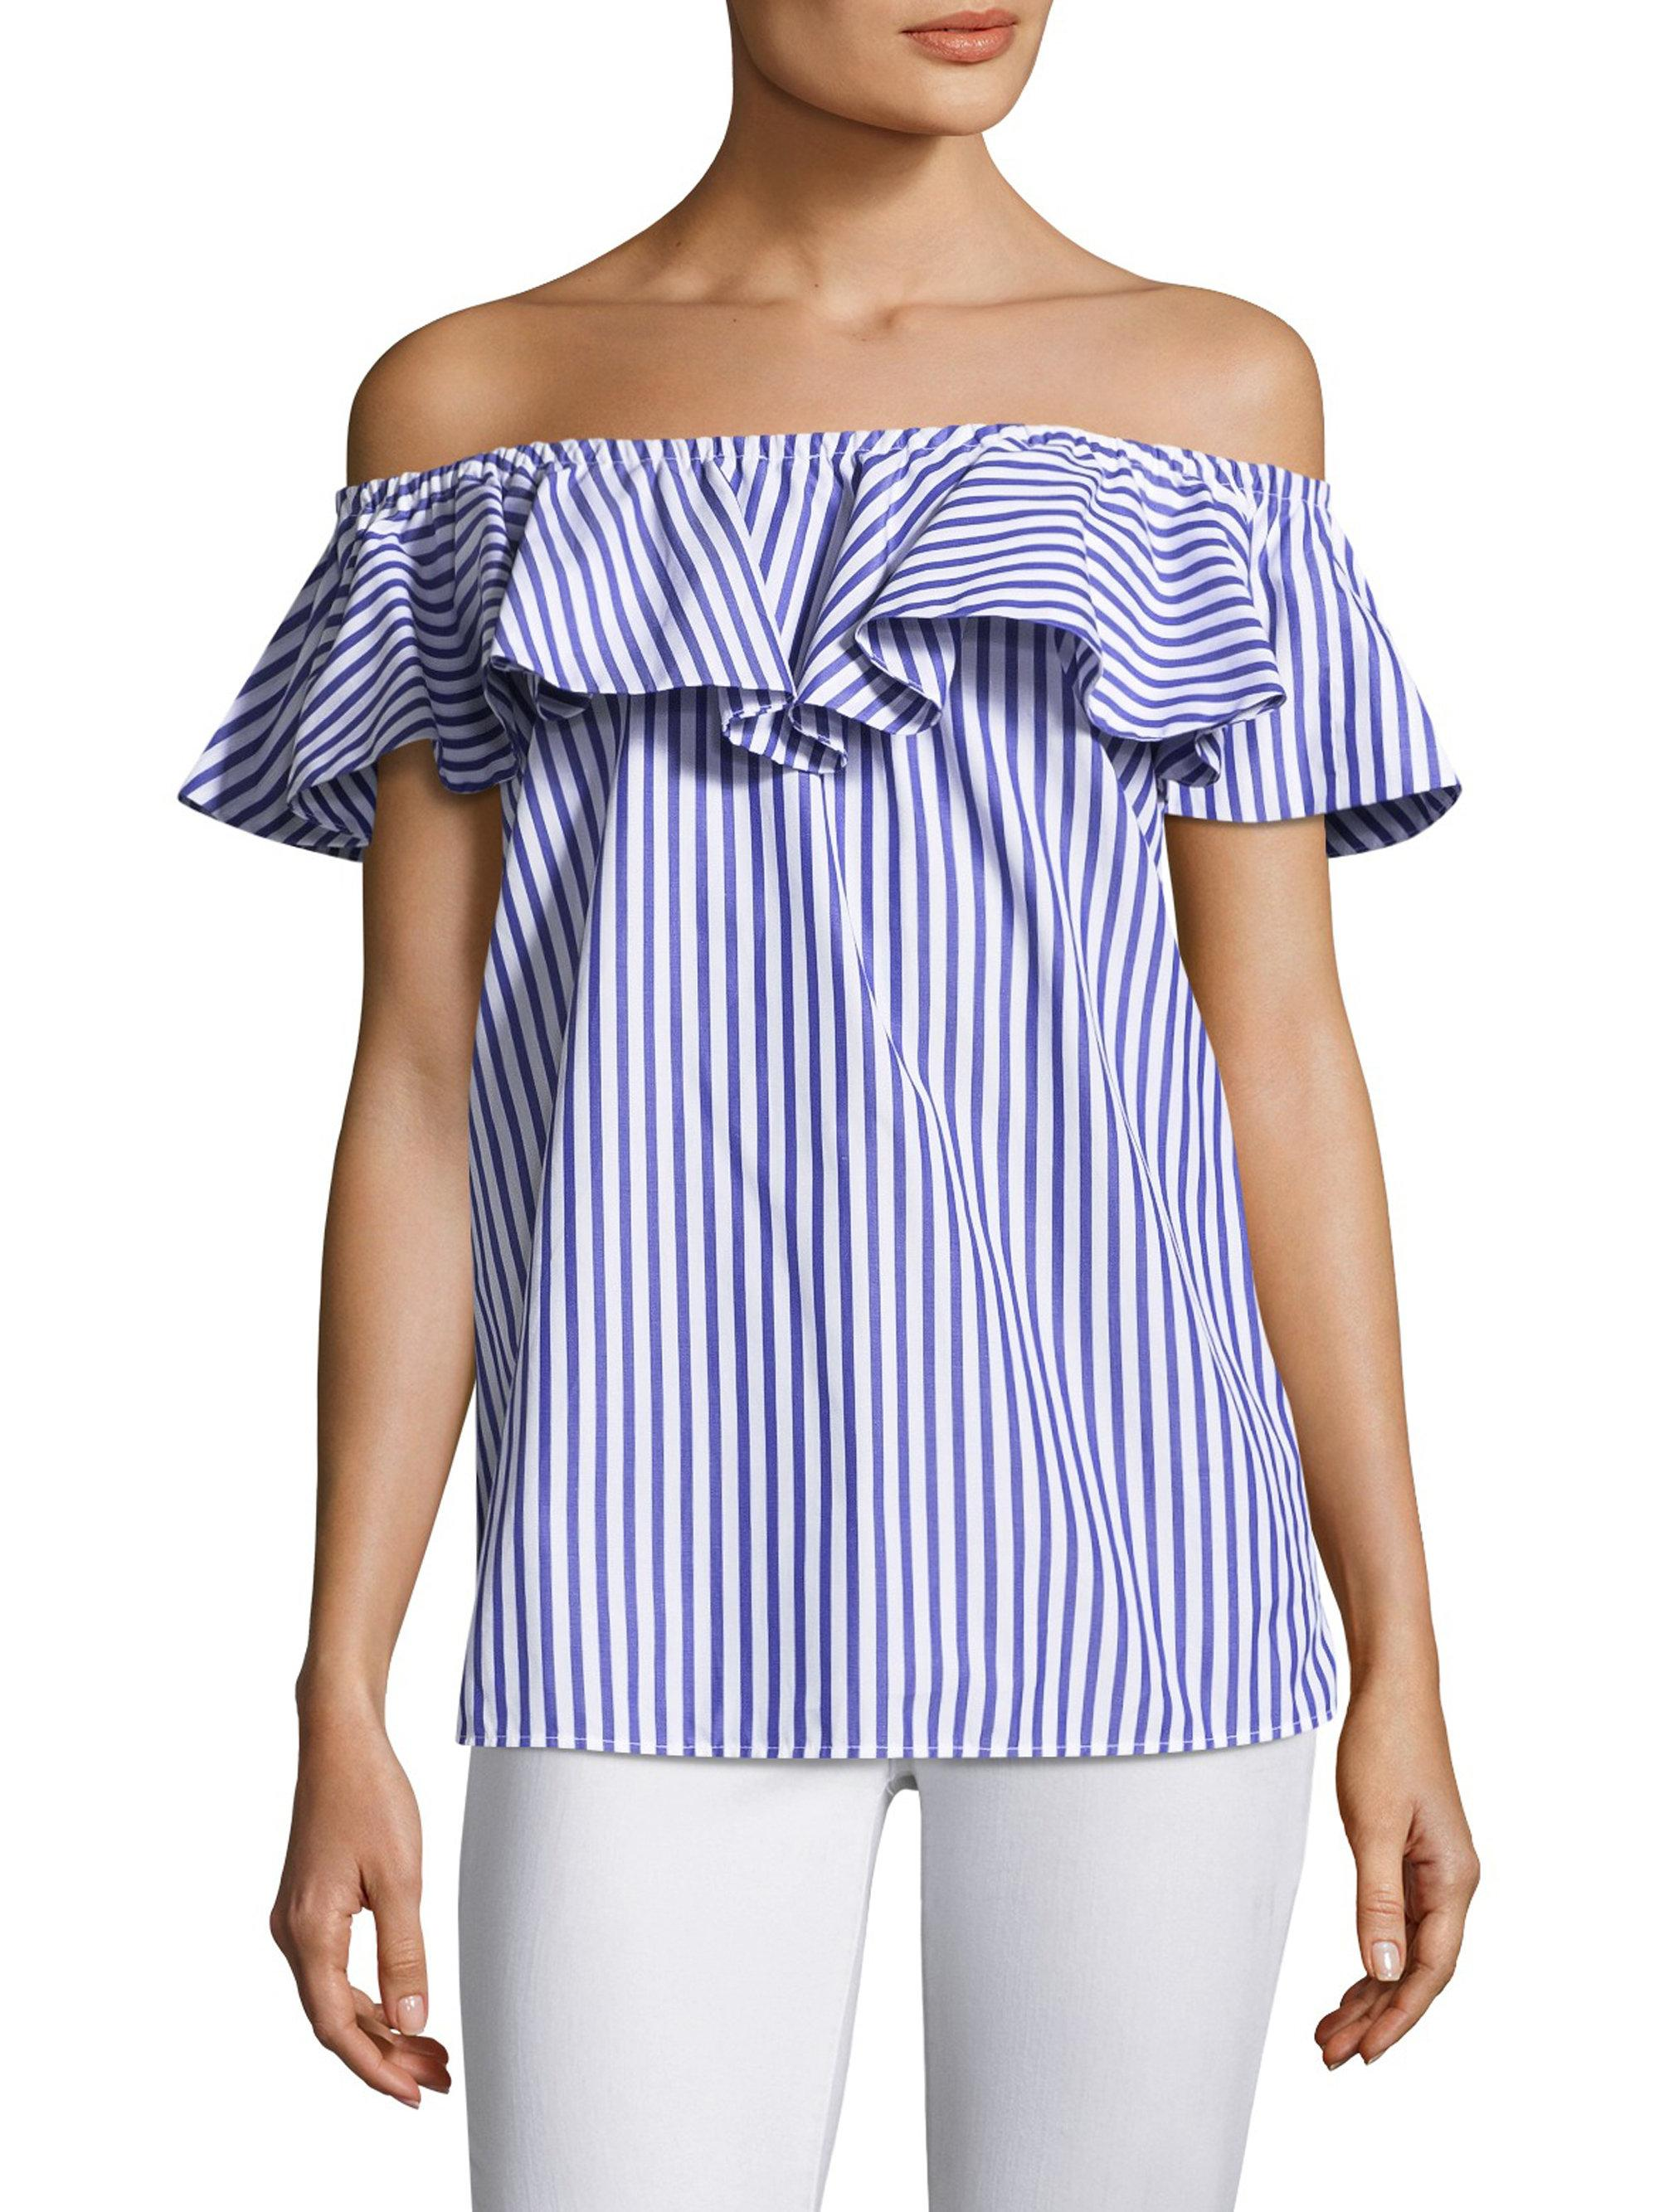 fa28ede54e276 Mds Stripes Off-the-shoulder Ruffle Cotton Top in Blue - Lyst